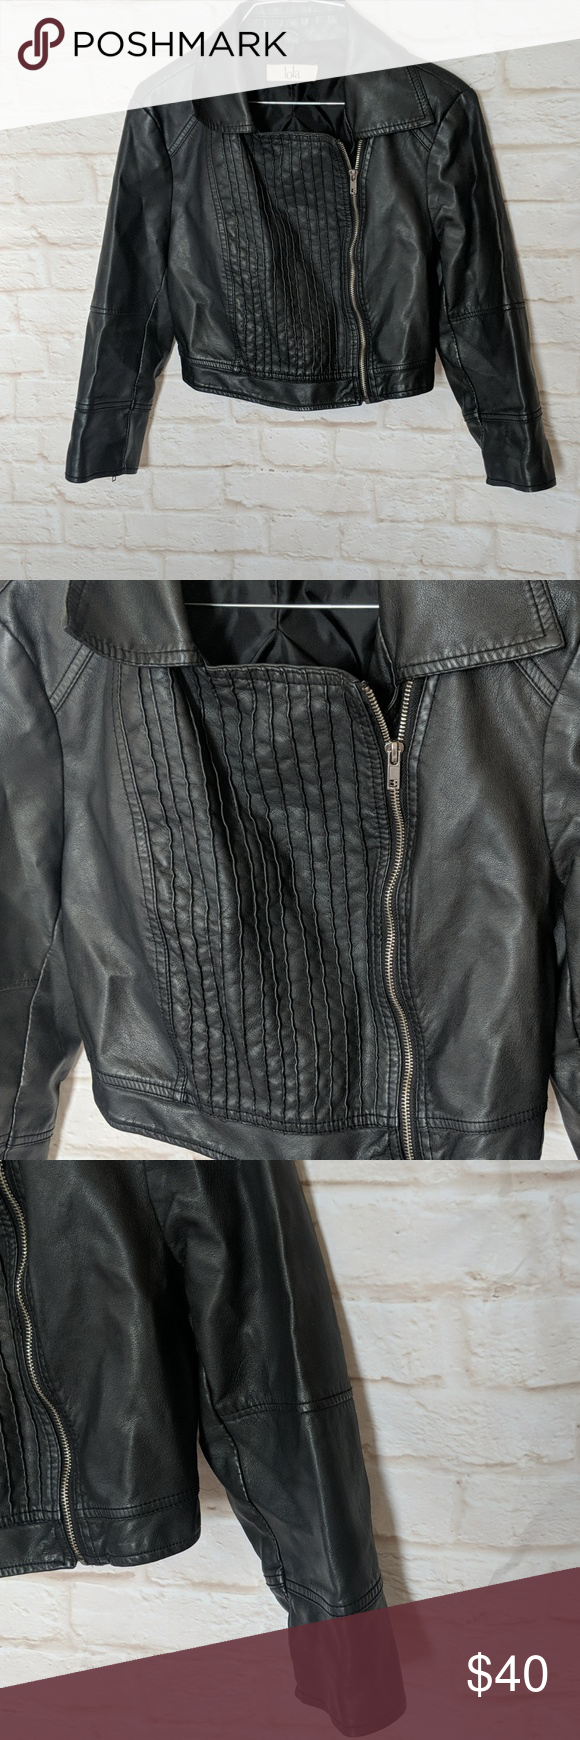 Cropped faux leather jacket large Cropped faux leather